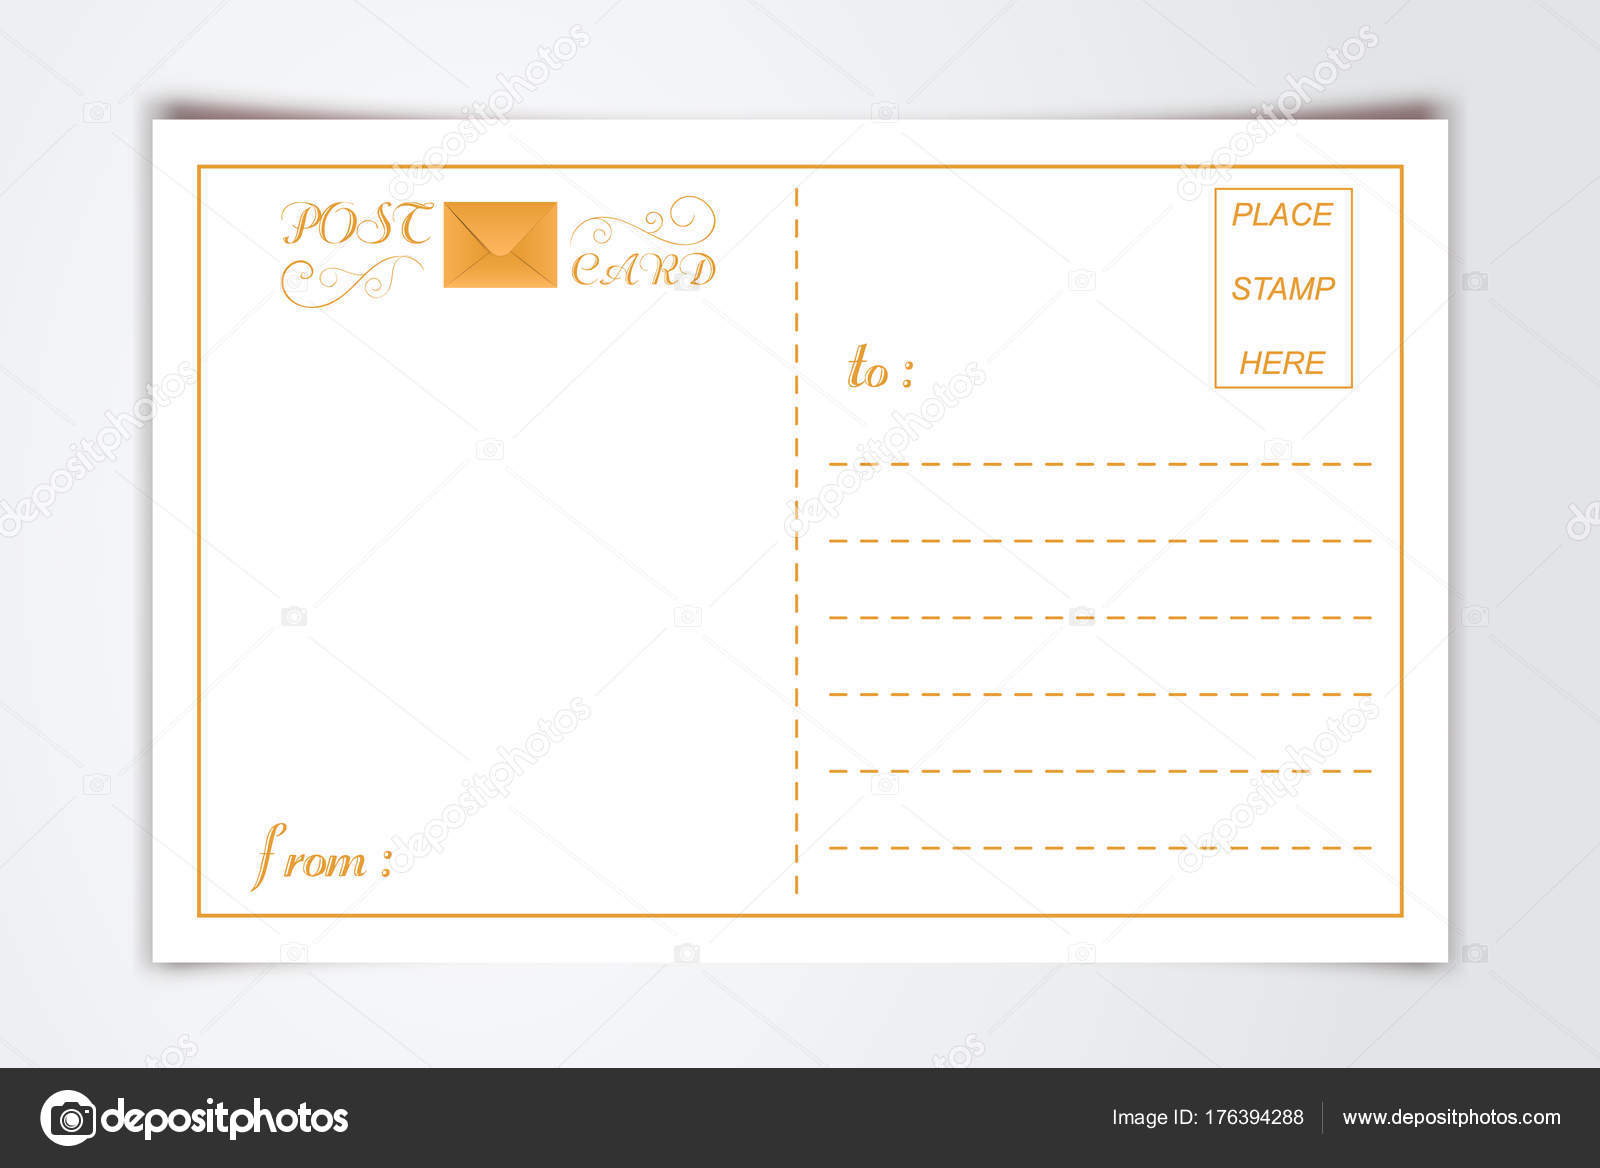 Modern Postcard Inner Reverse Side Blank Template With Logo Typography Paper Background Vintage Style Vector